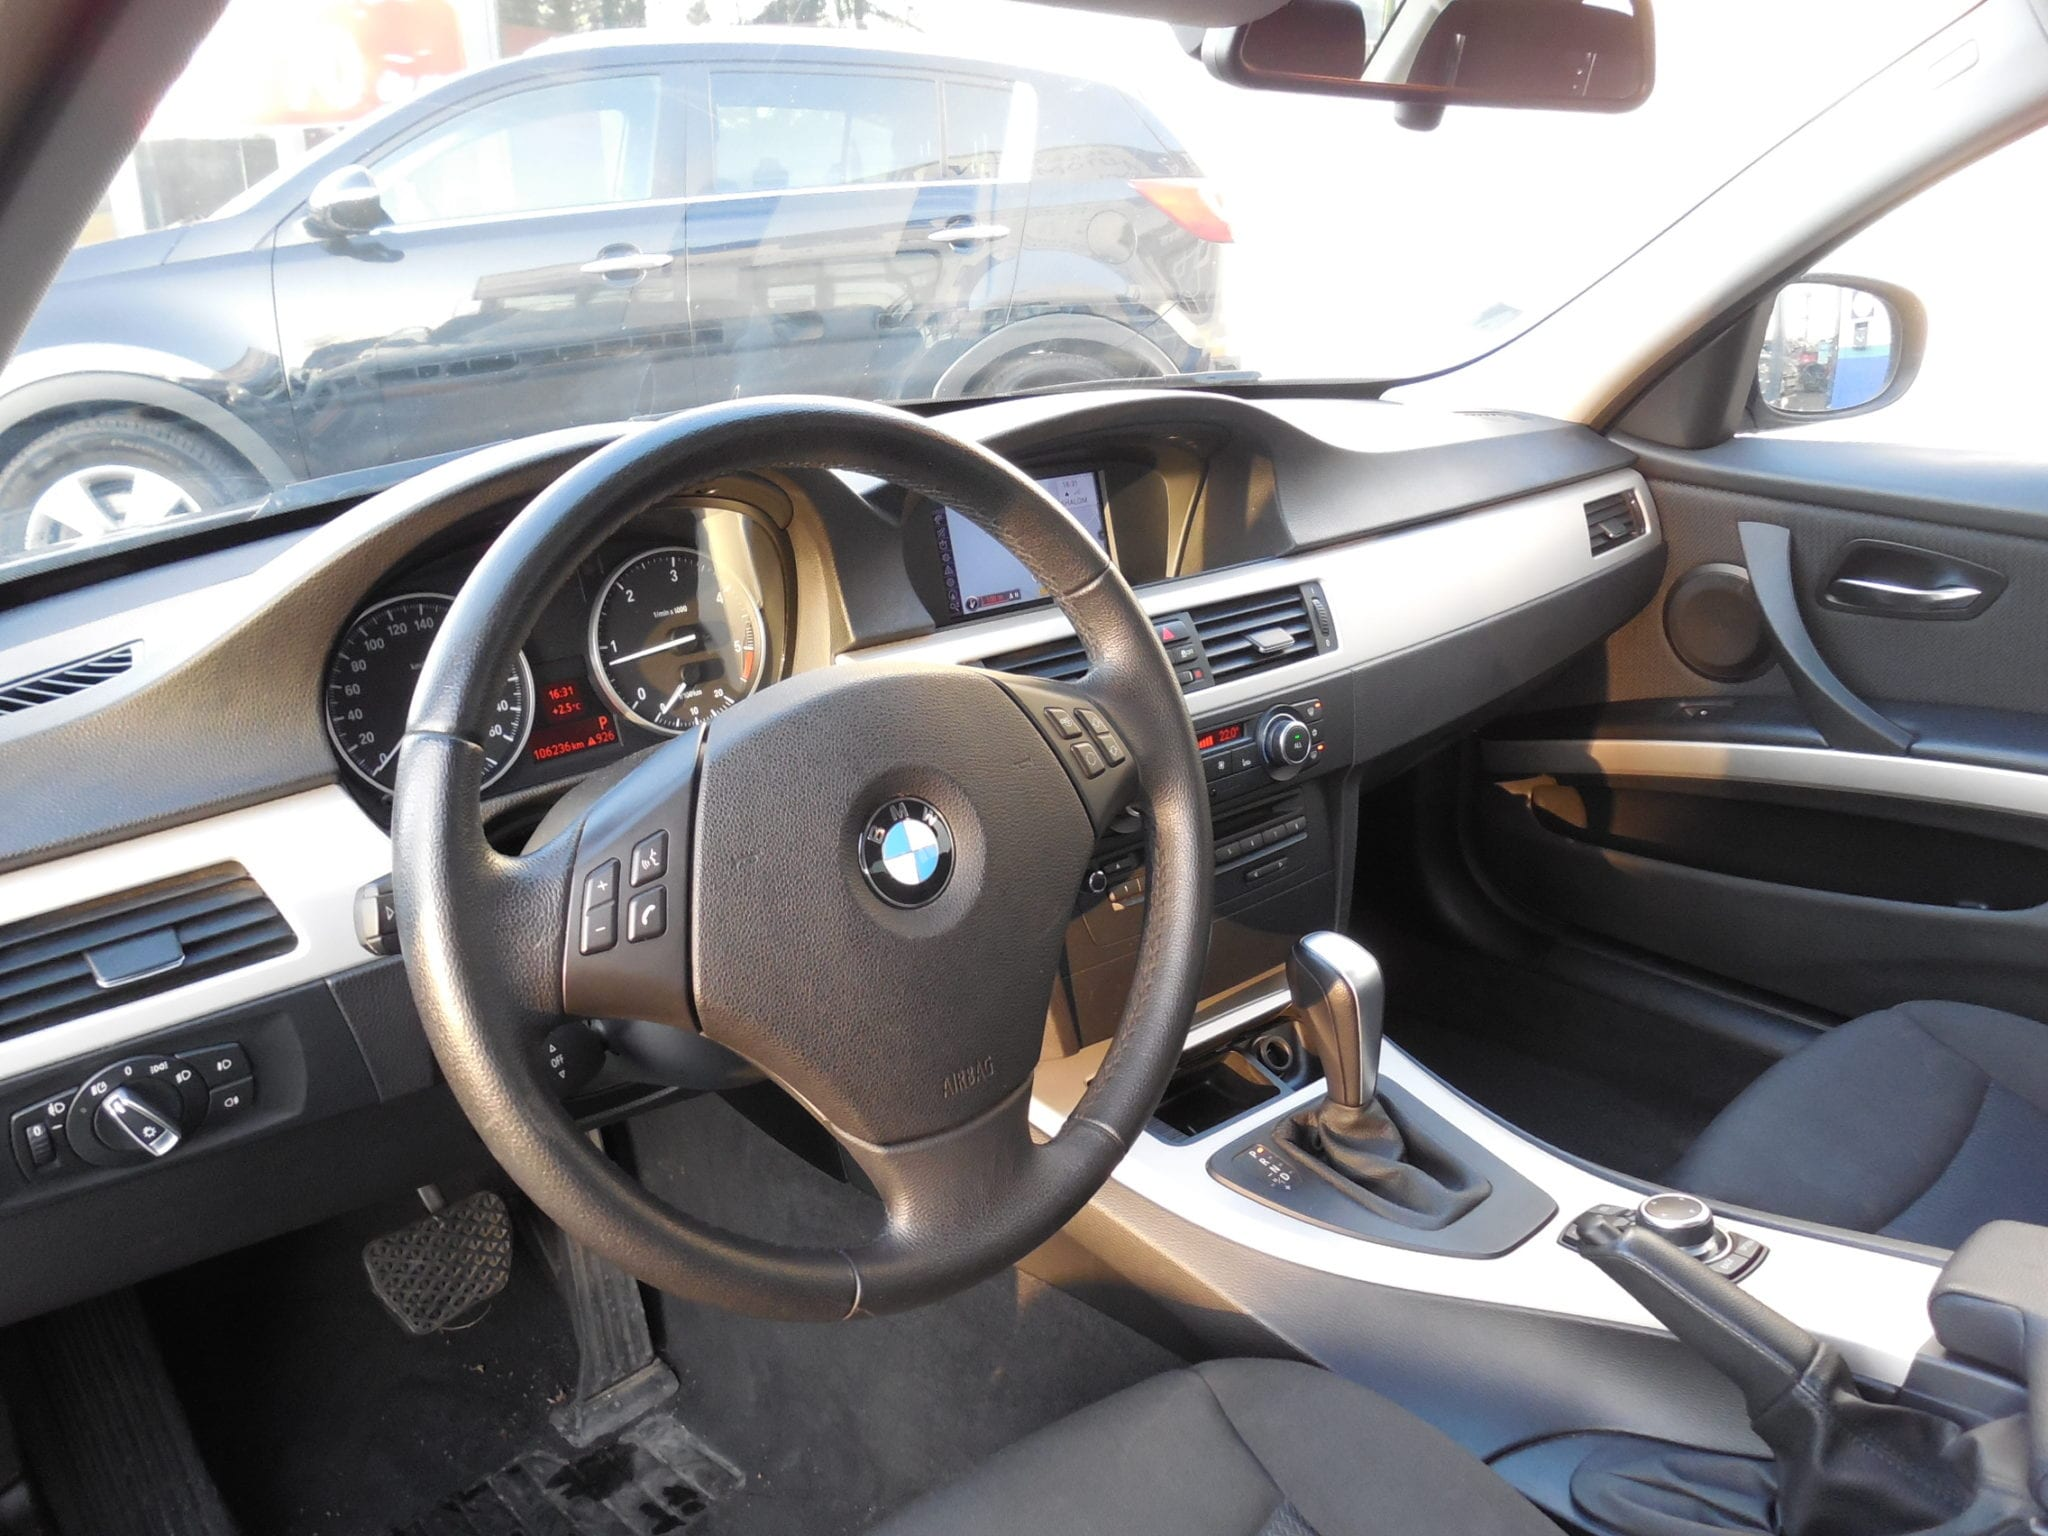 Bmw Bmw Serie 3 Edition business 184cv  - Image 3